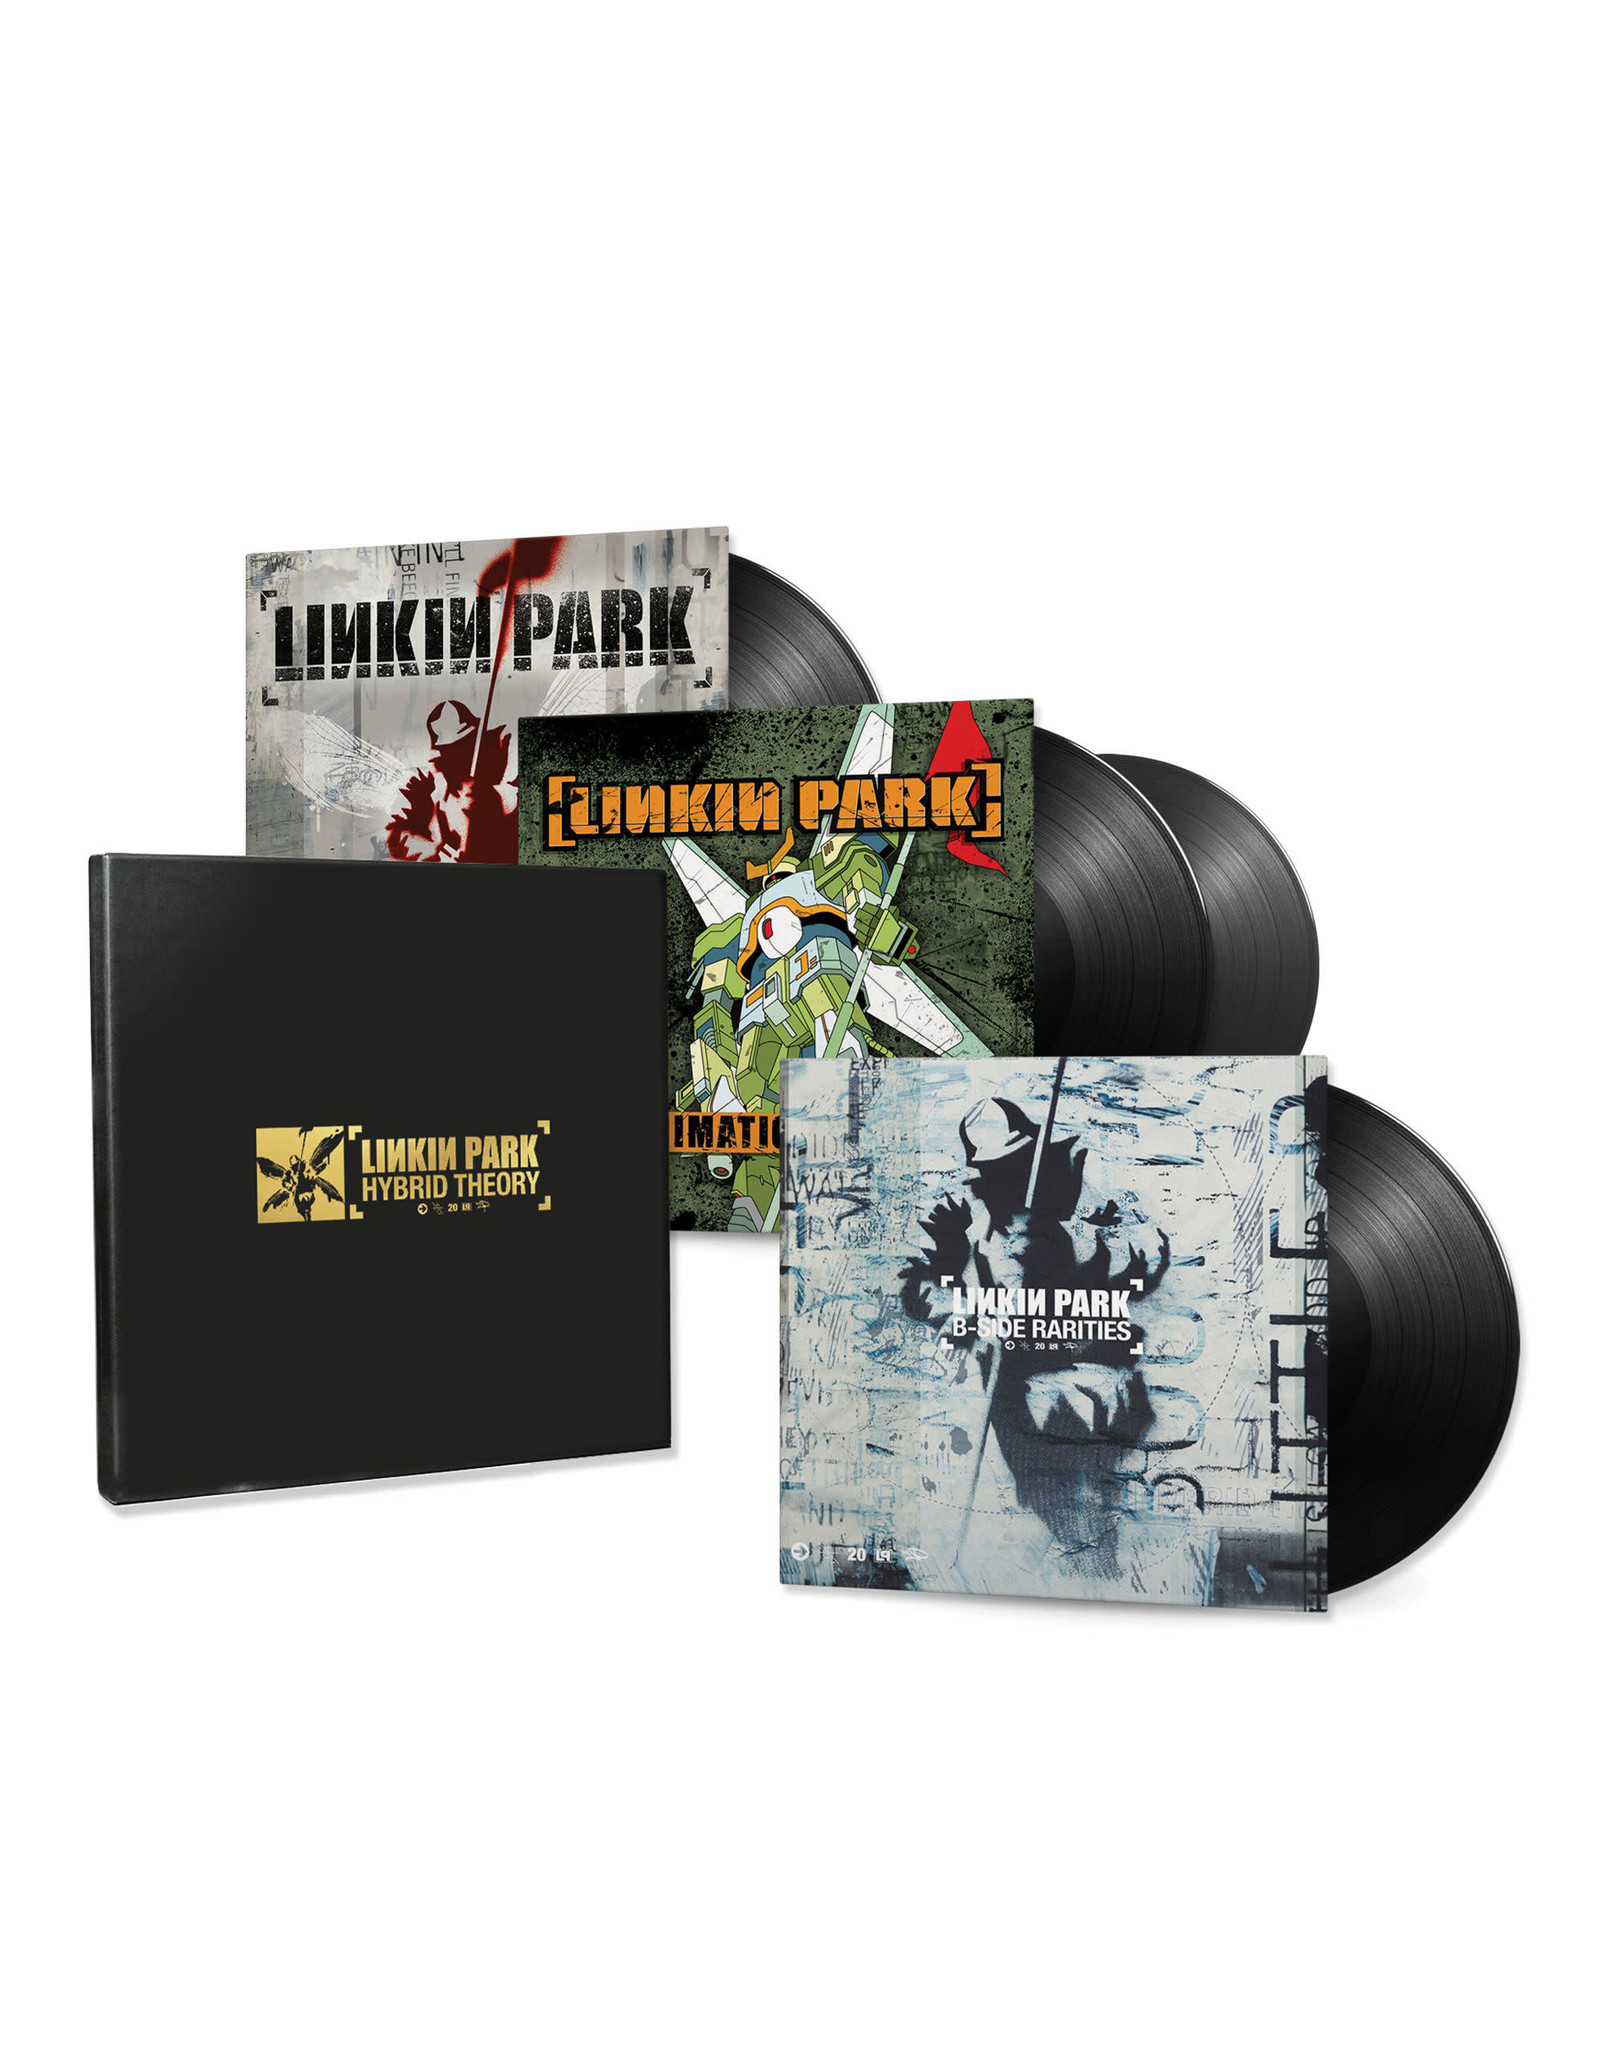 Linkin Park - Hybrid Theory (20th Anniversary Deluxe Edition)